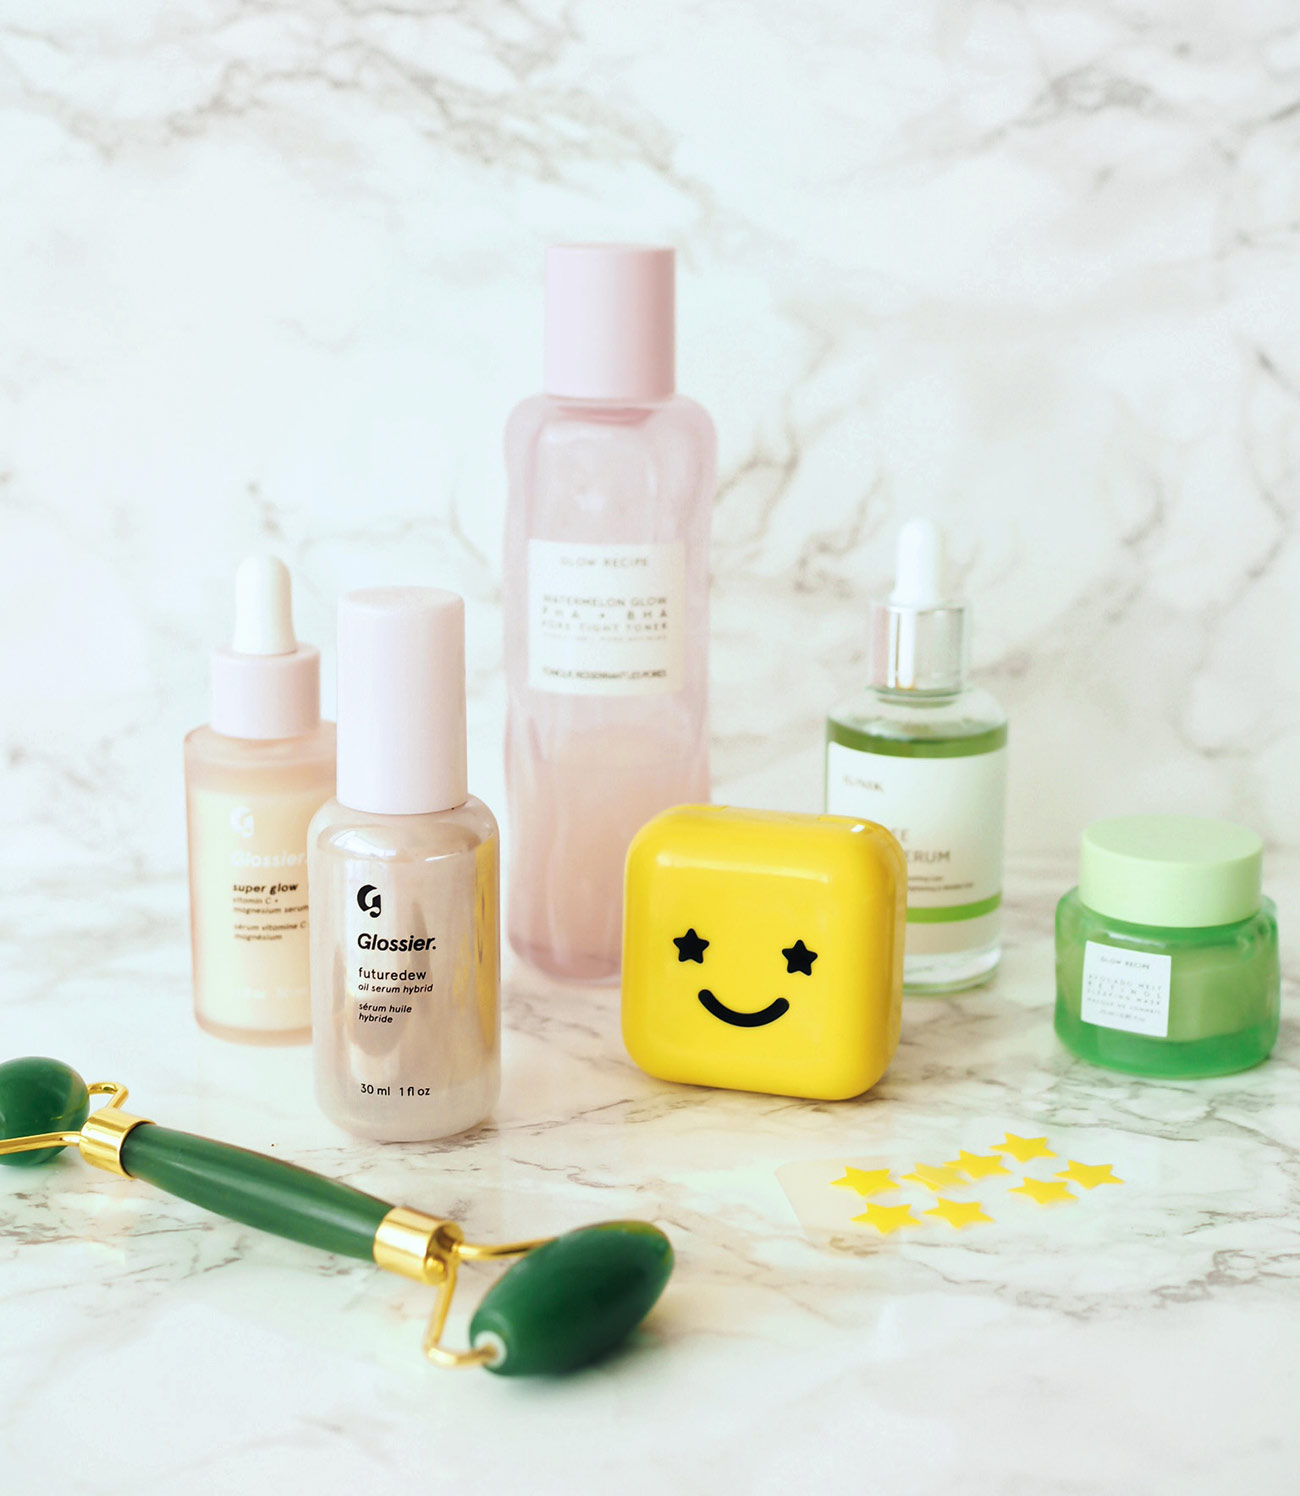 skin care branding - shelfie